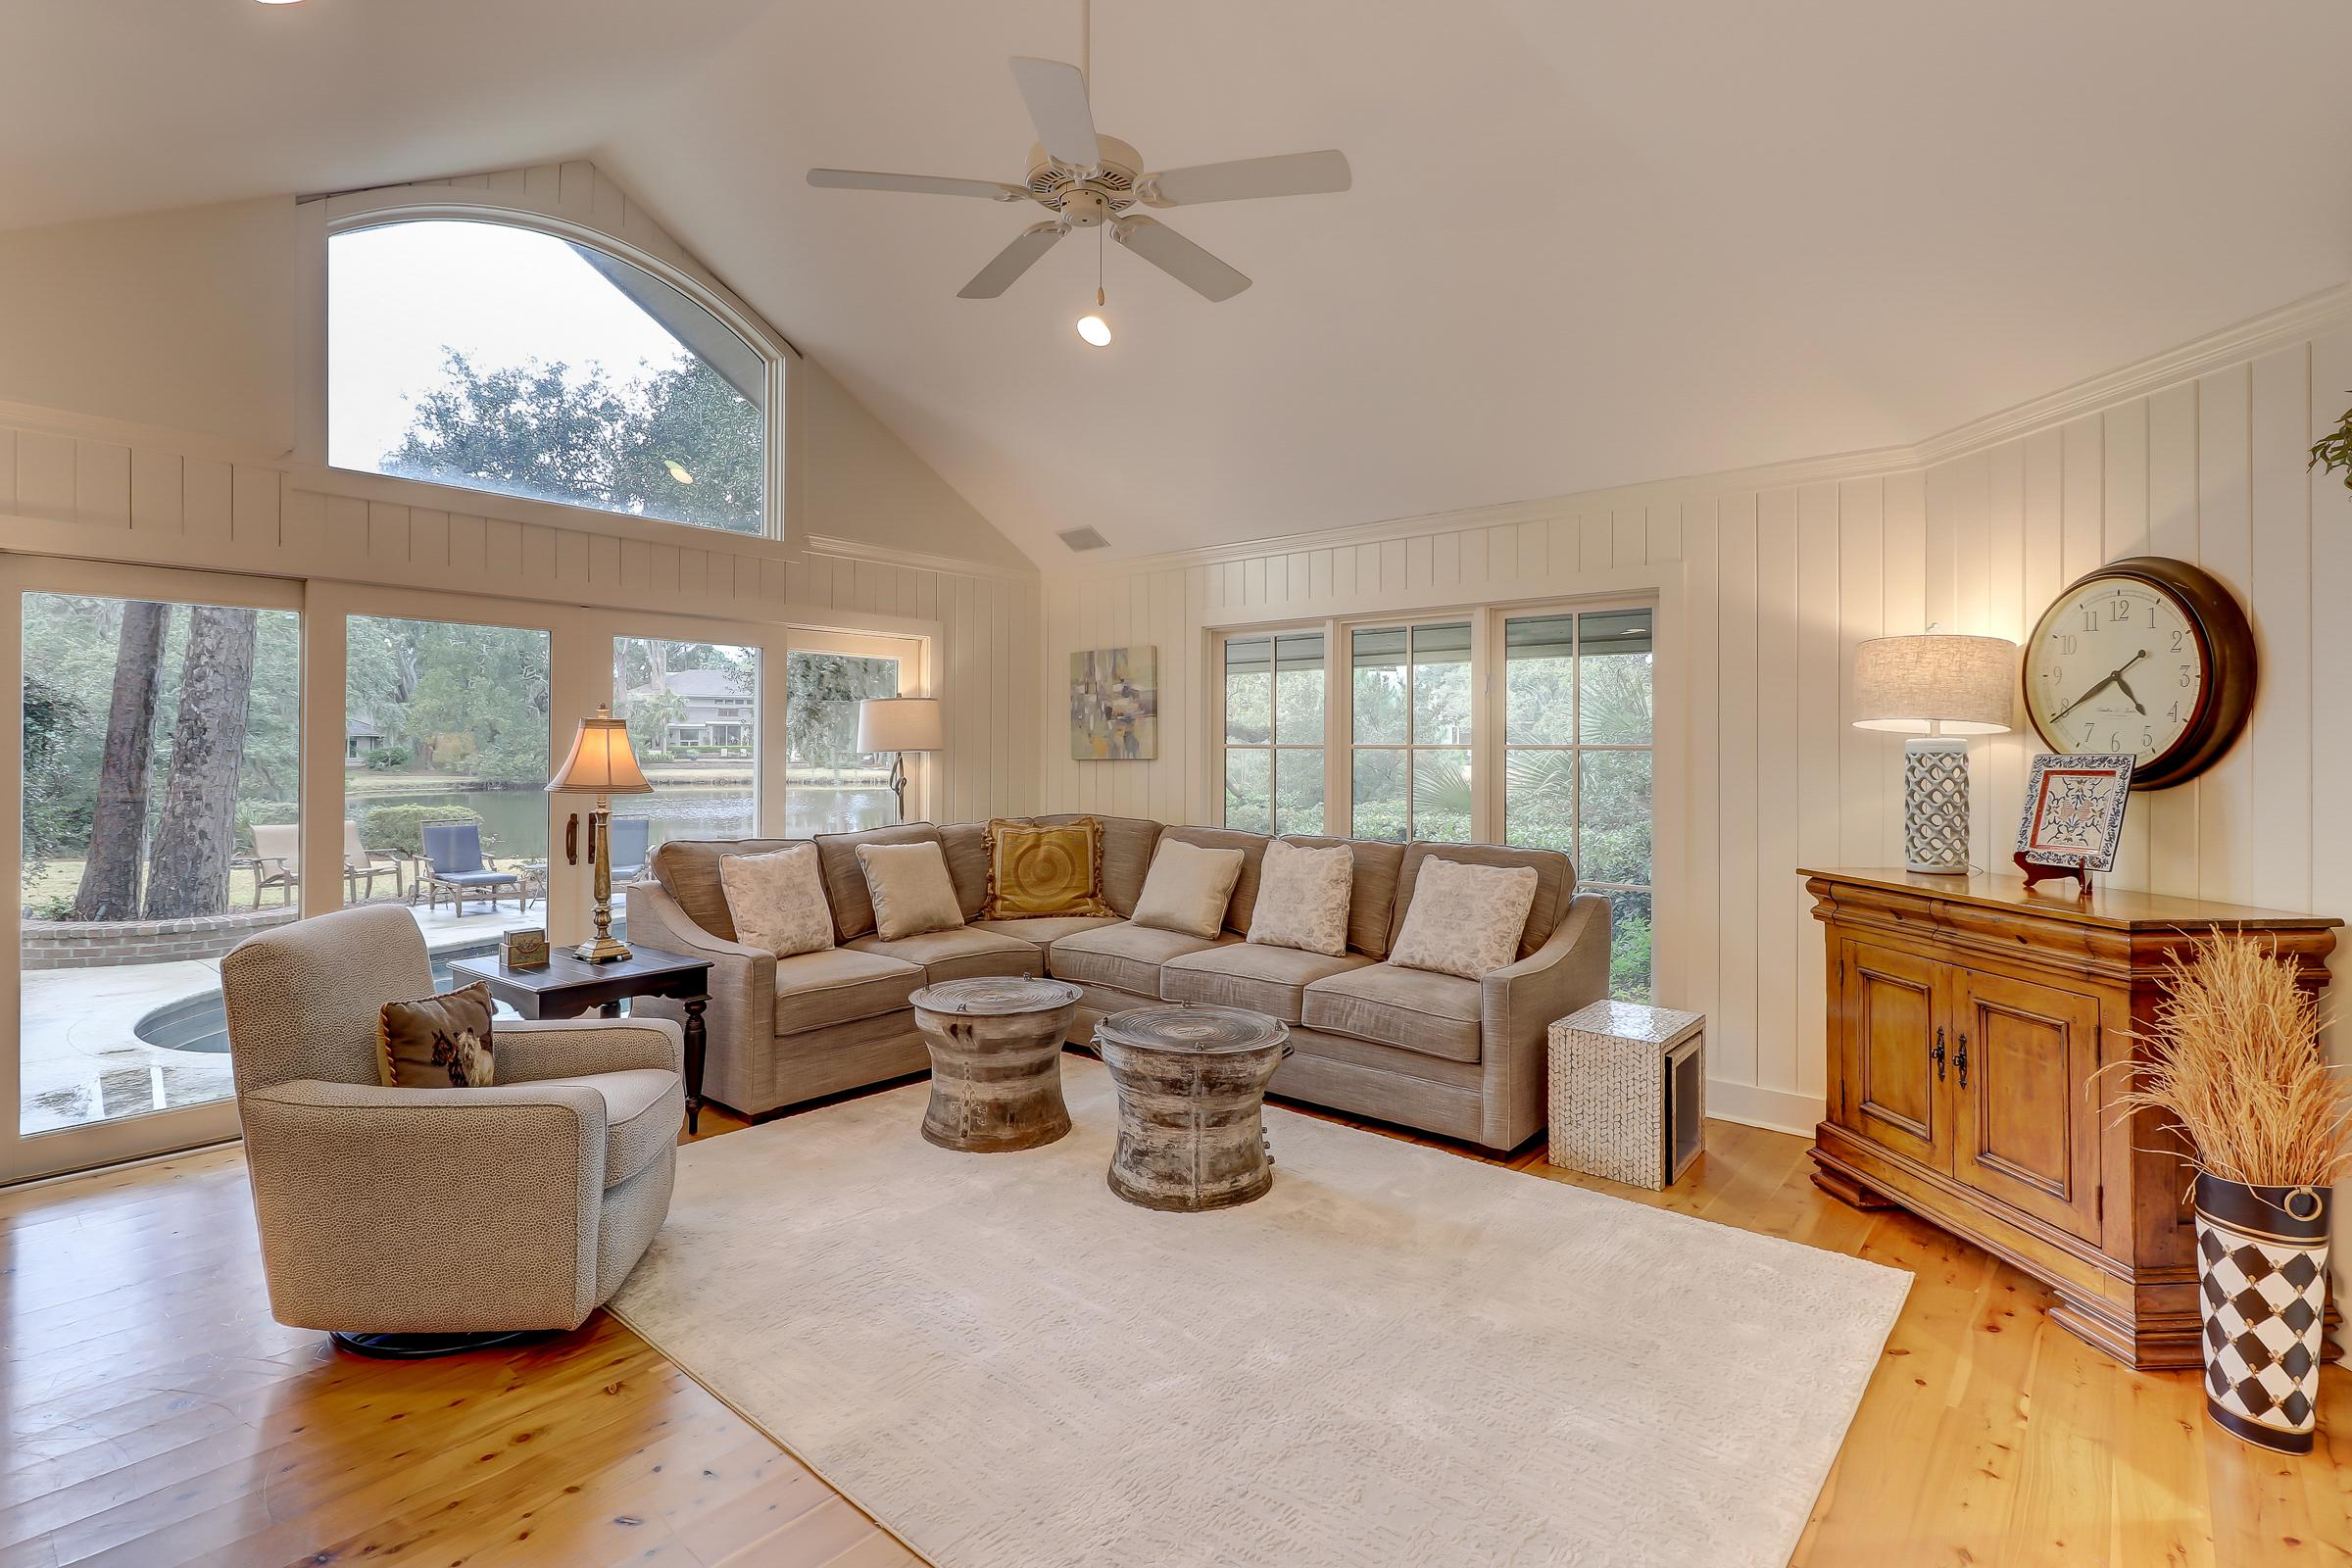 The Great Room boasts vaulted ceilings and tall windows overlooking to outdoor oasis.